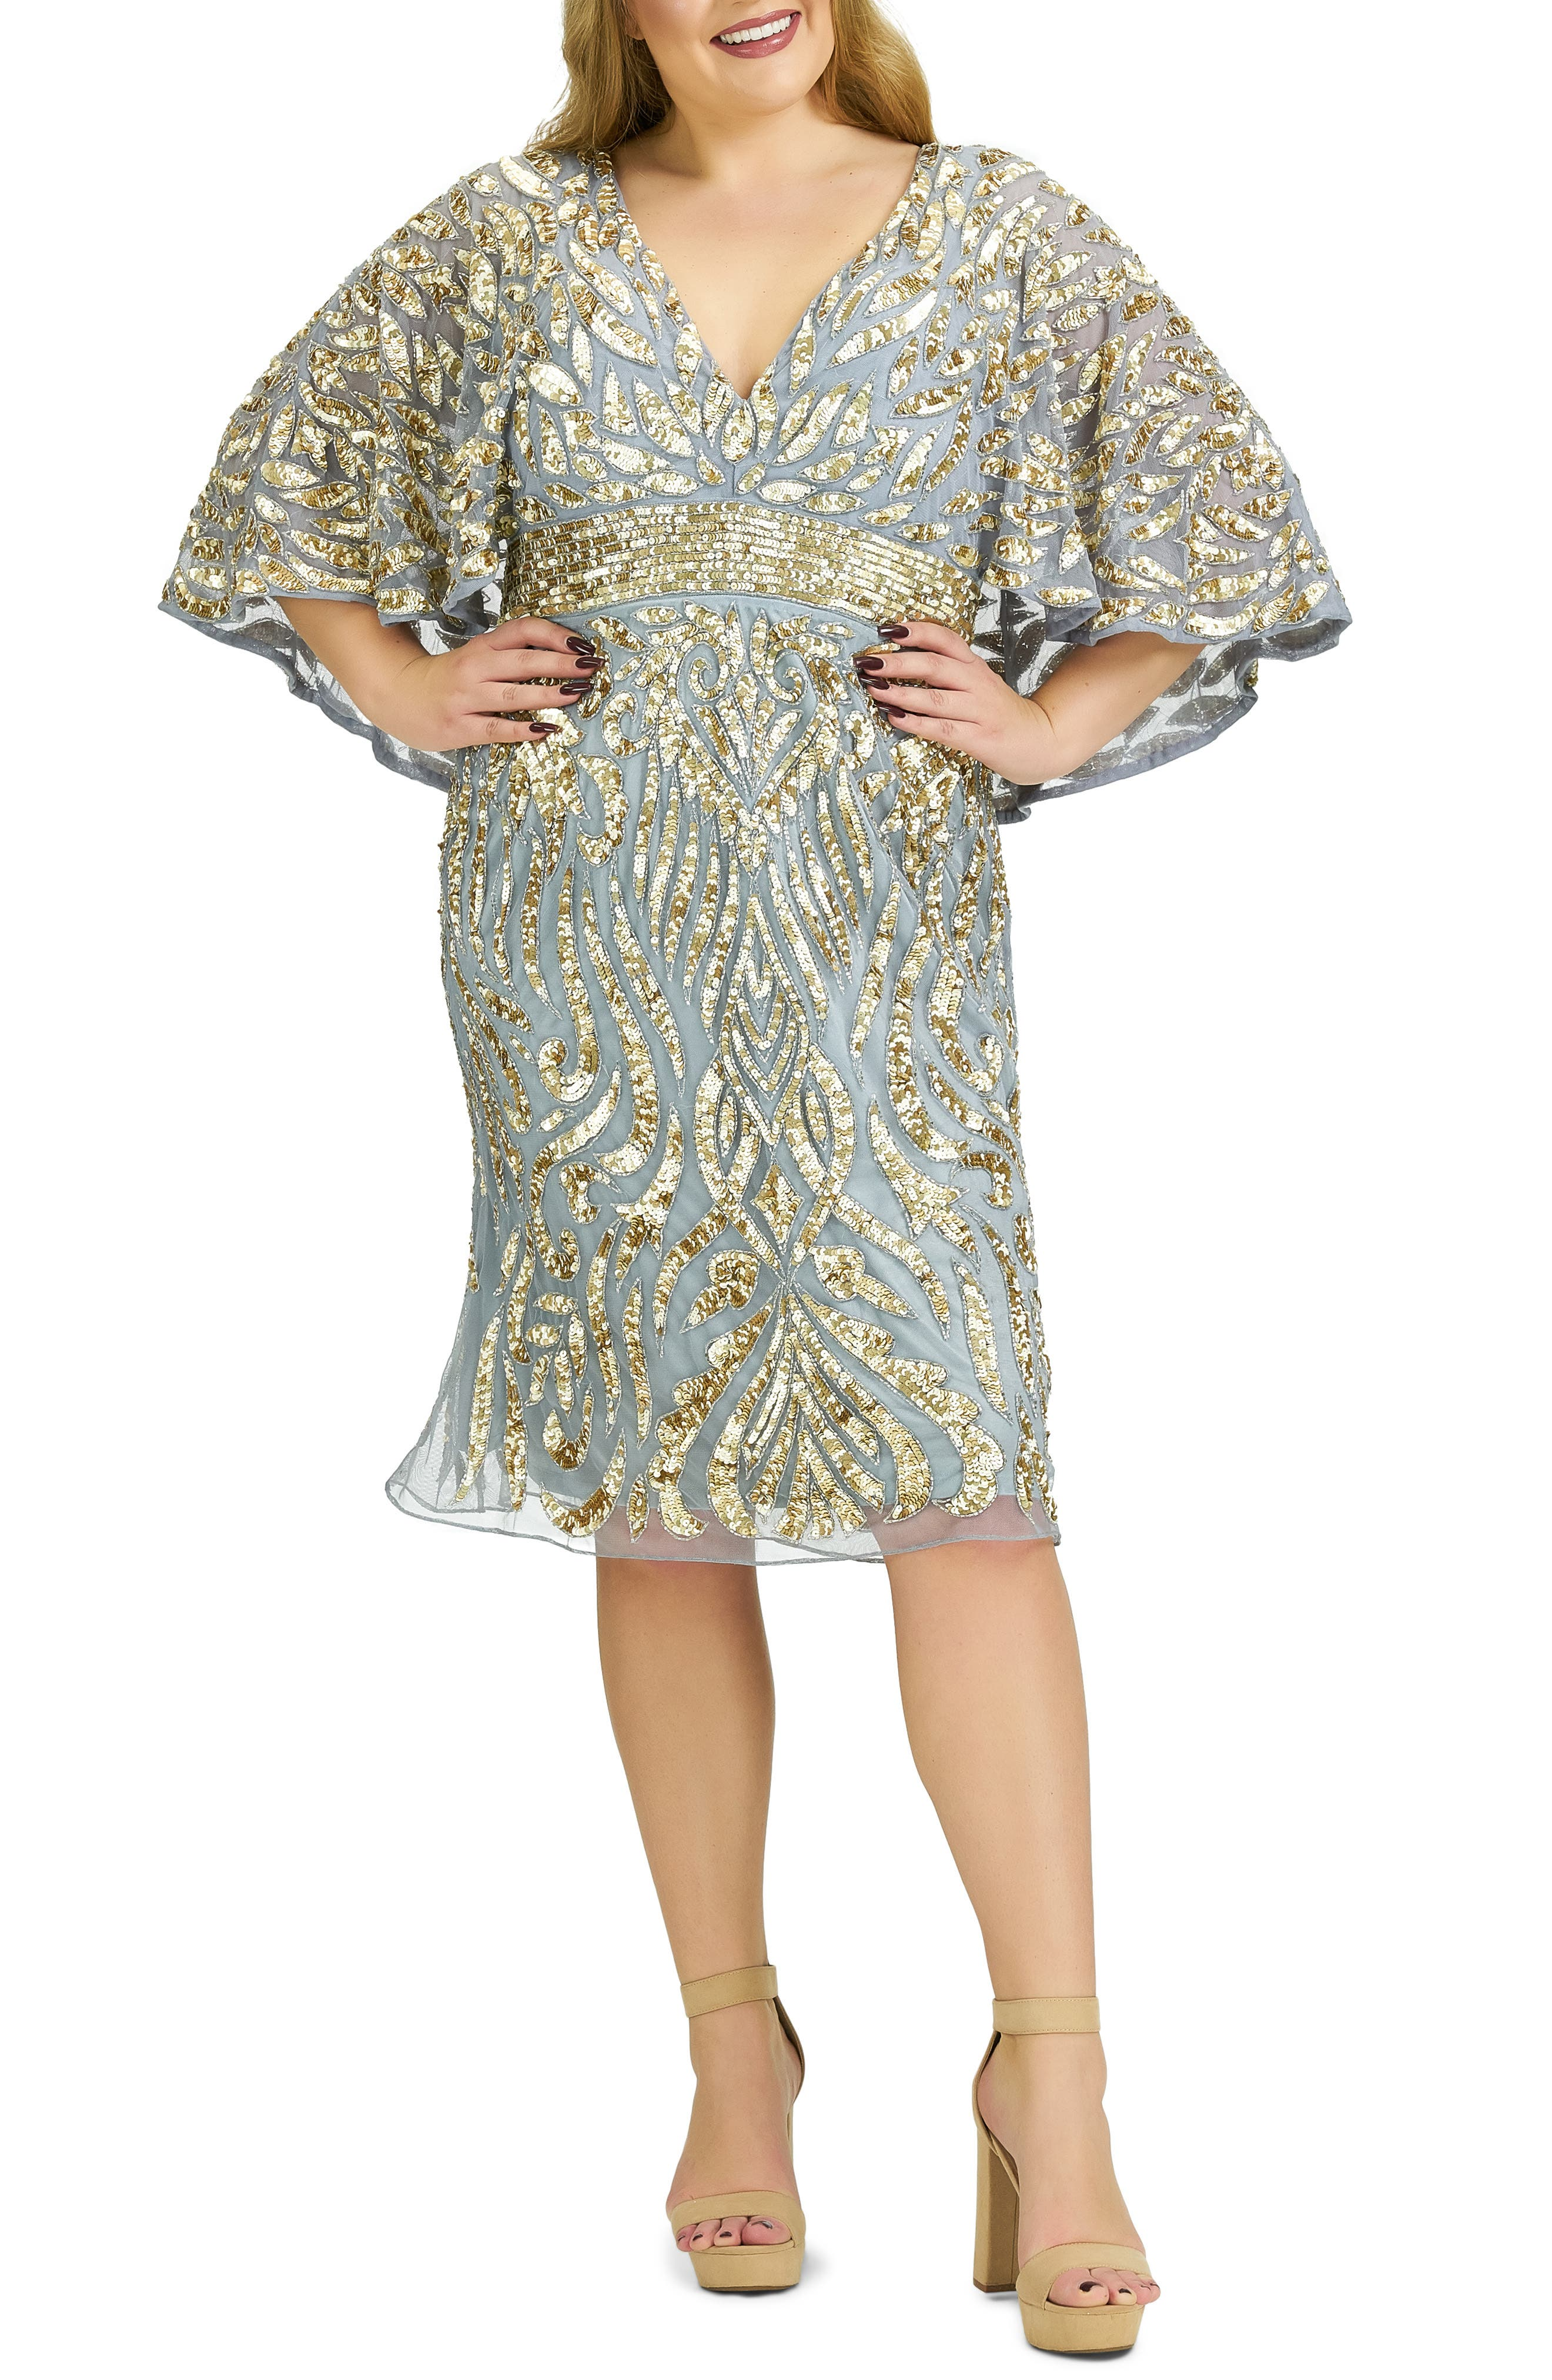 70s Prom, Formal, Evening, Party Dresses Plus Size Womens MAC Duggal Sequin Capelet Cocktail Dress $398.00 AT vintagedancer.com